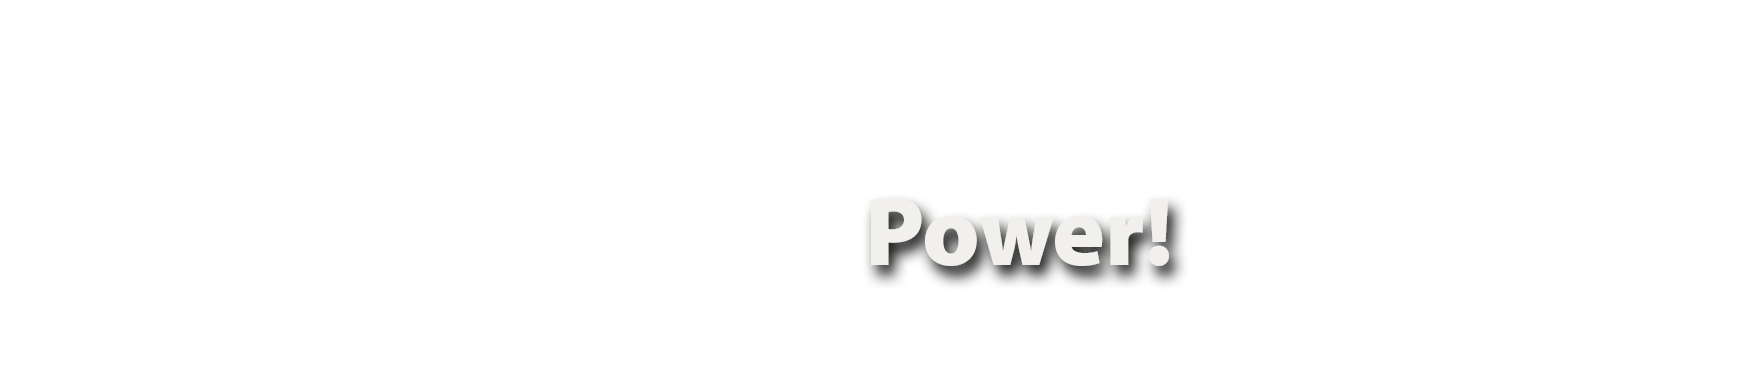 Remember Your Power!